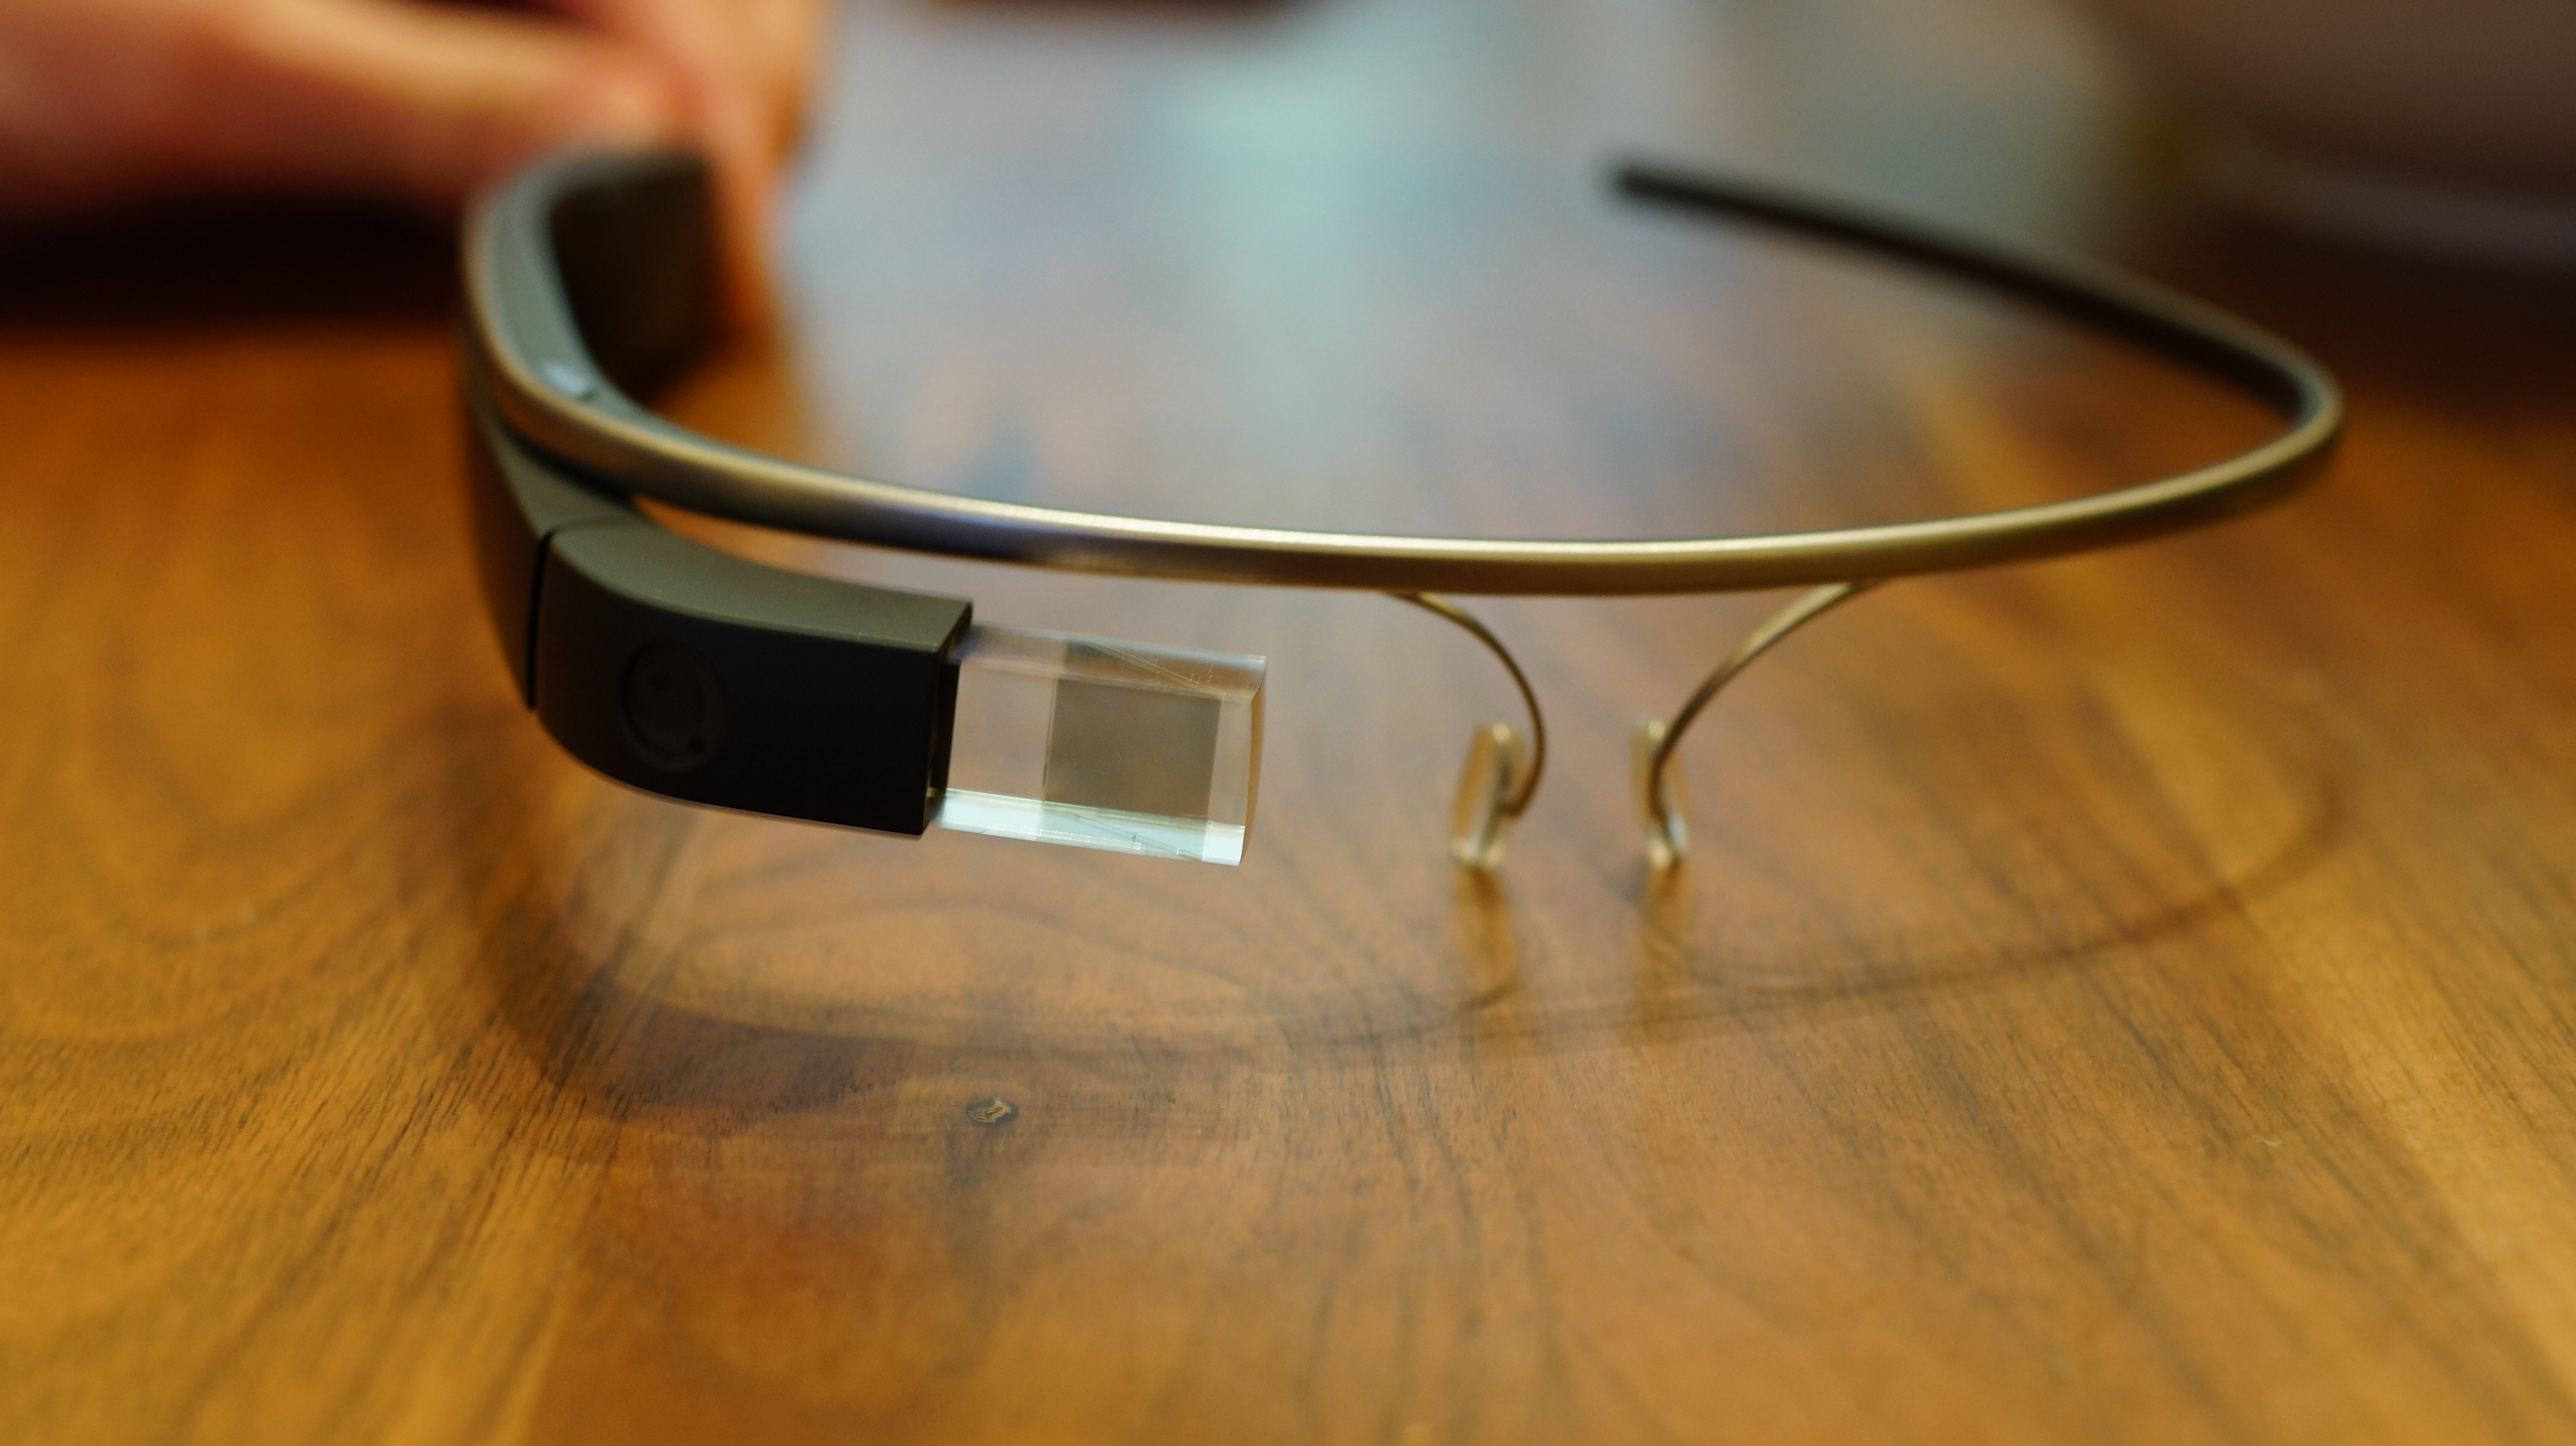 Developing apps for Google Glass by Marcio Valenzuela